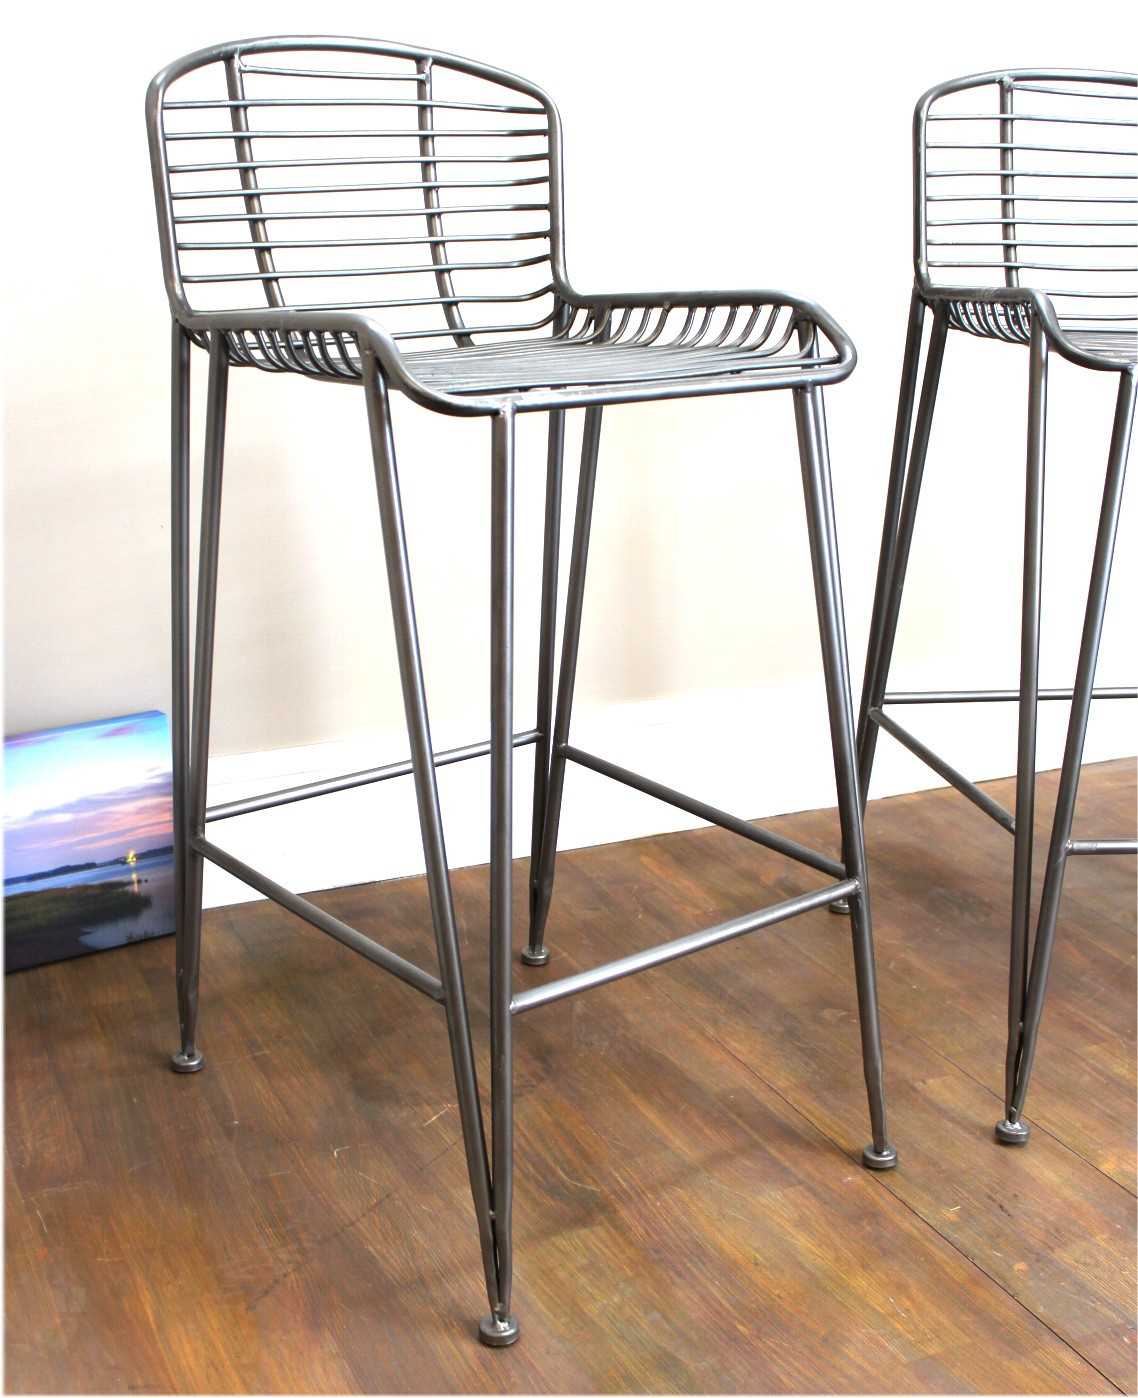 Bar Stool With Metal Construction Danish Modern Era Old Style Pair The Kings Bay